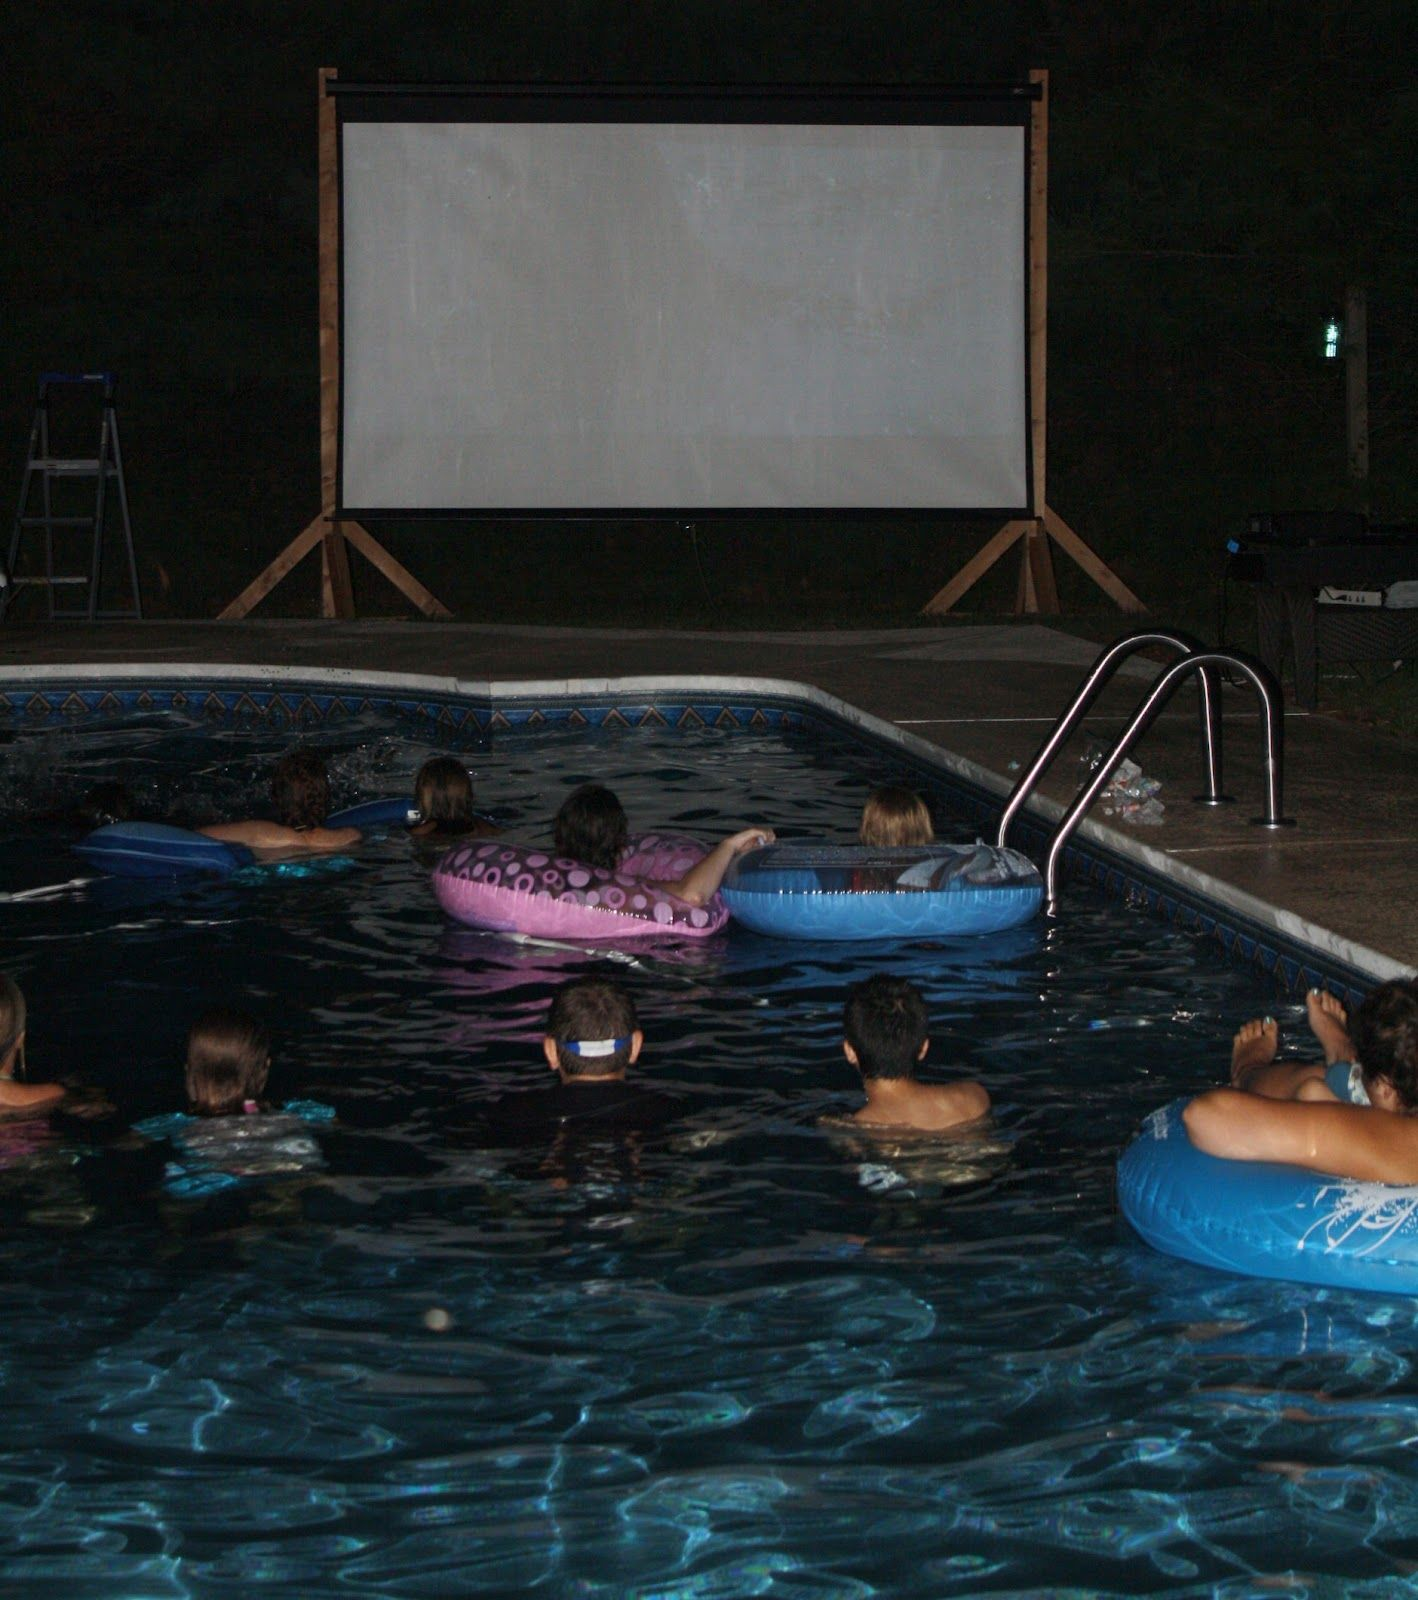 Our Shark Week. DIY movie screen by pool to show 'Jaws